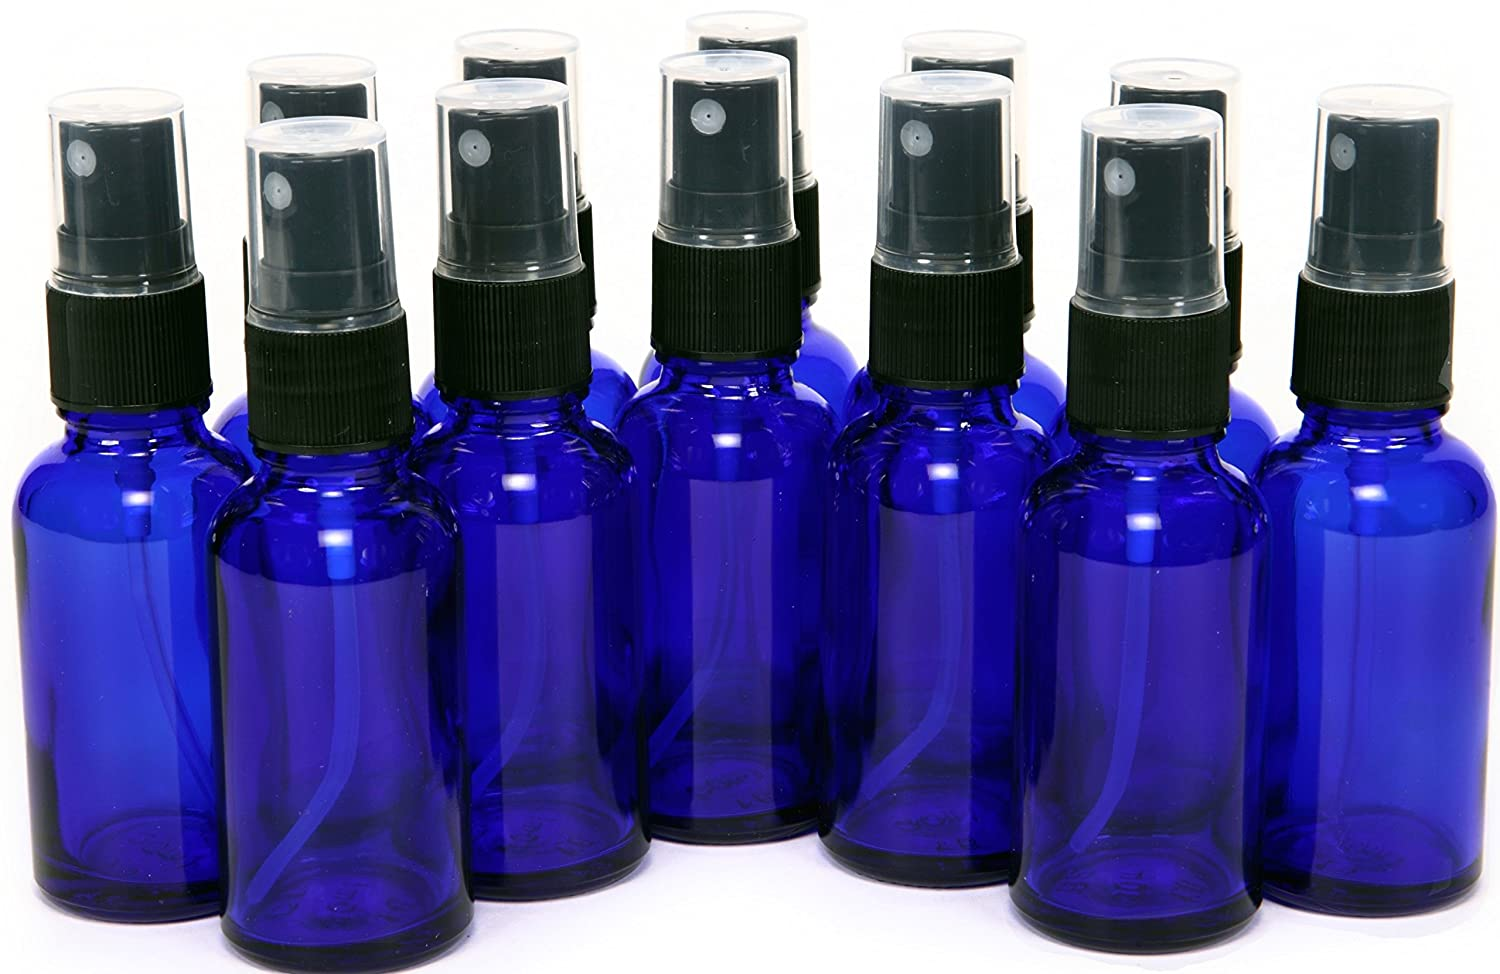 12 New, High Quality, 1 oz Cobalt Blue Glass Bottles, with Black Fine Mist Sprayers